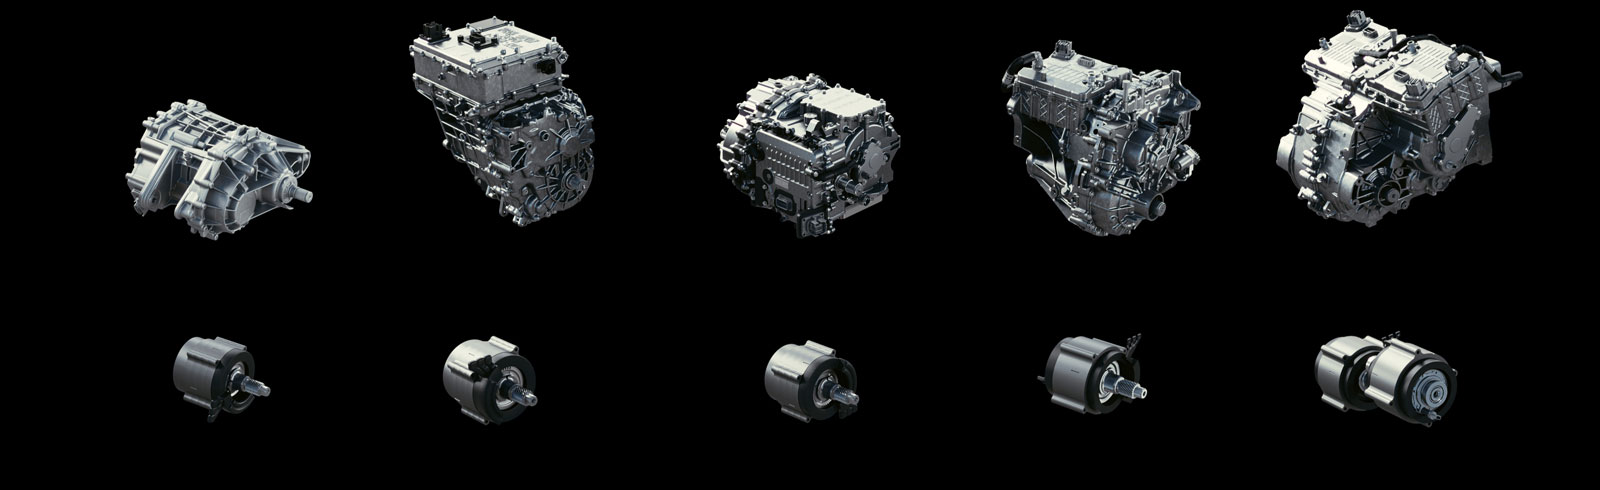 GM introduced a whole family of interchangeable drive units and motors for its future EVs